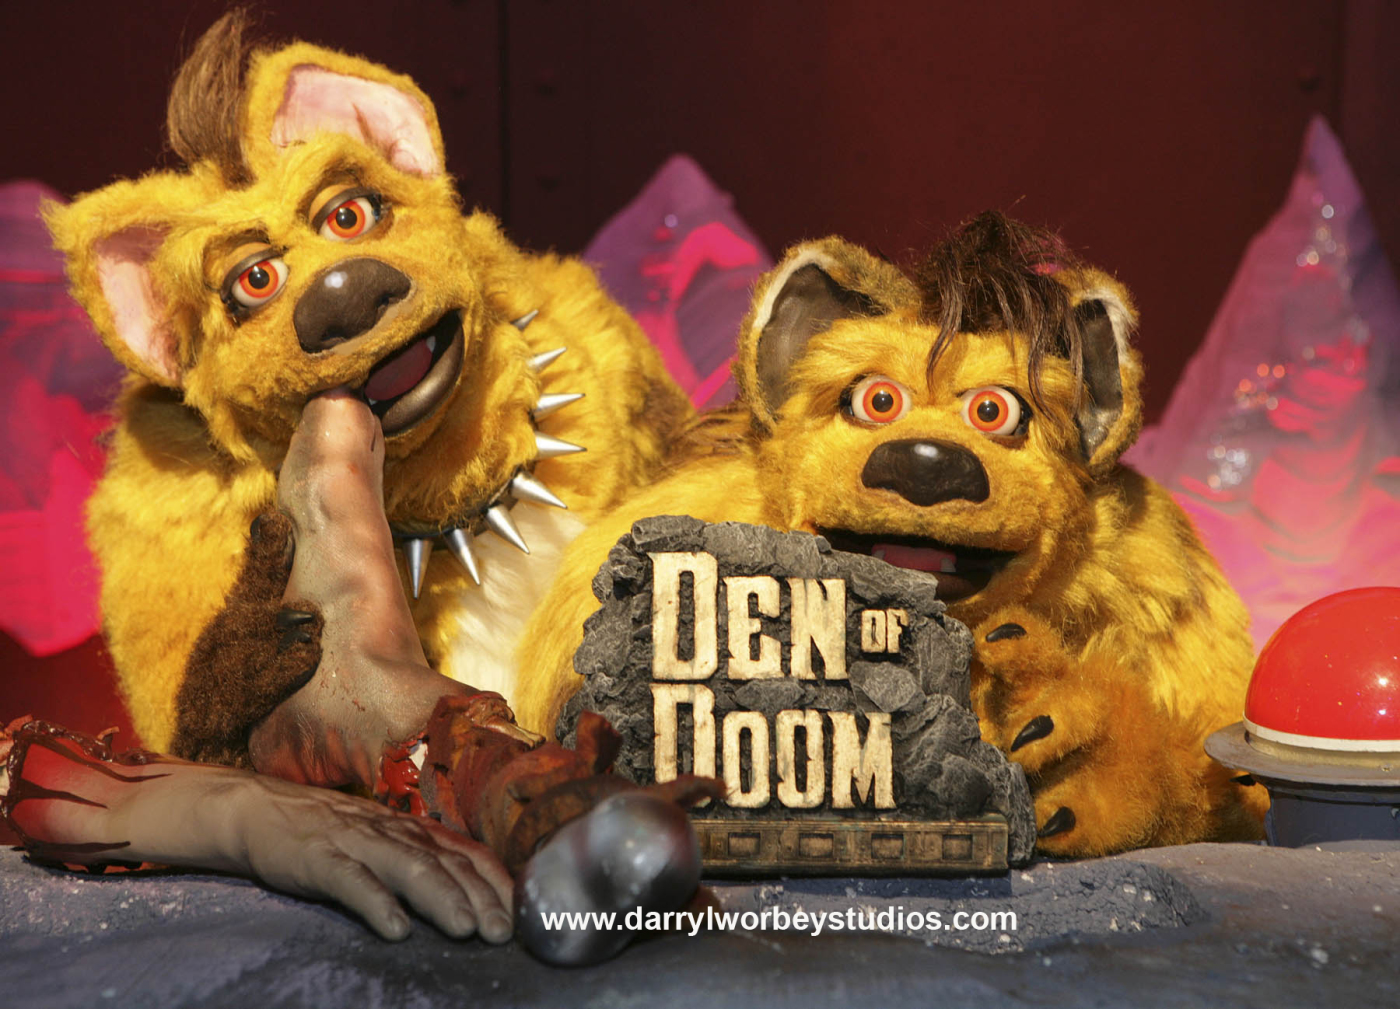 Scratch 'n' Sniff's Den of Doom (2007)